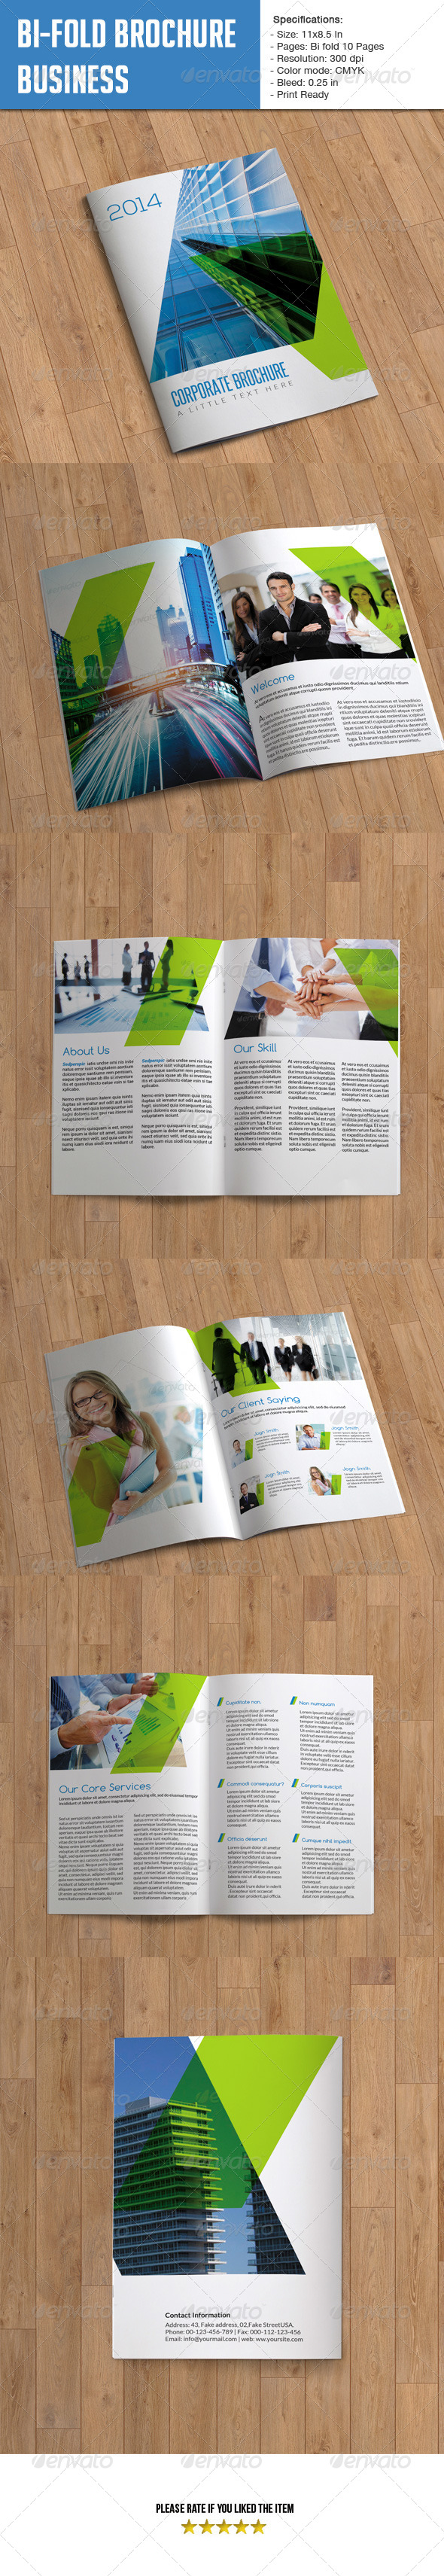 GraphicRiver Bifold Brochure for Business- 10 Pages 6192294